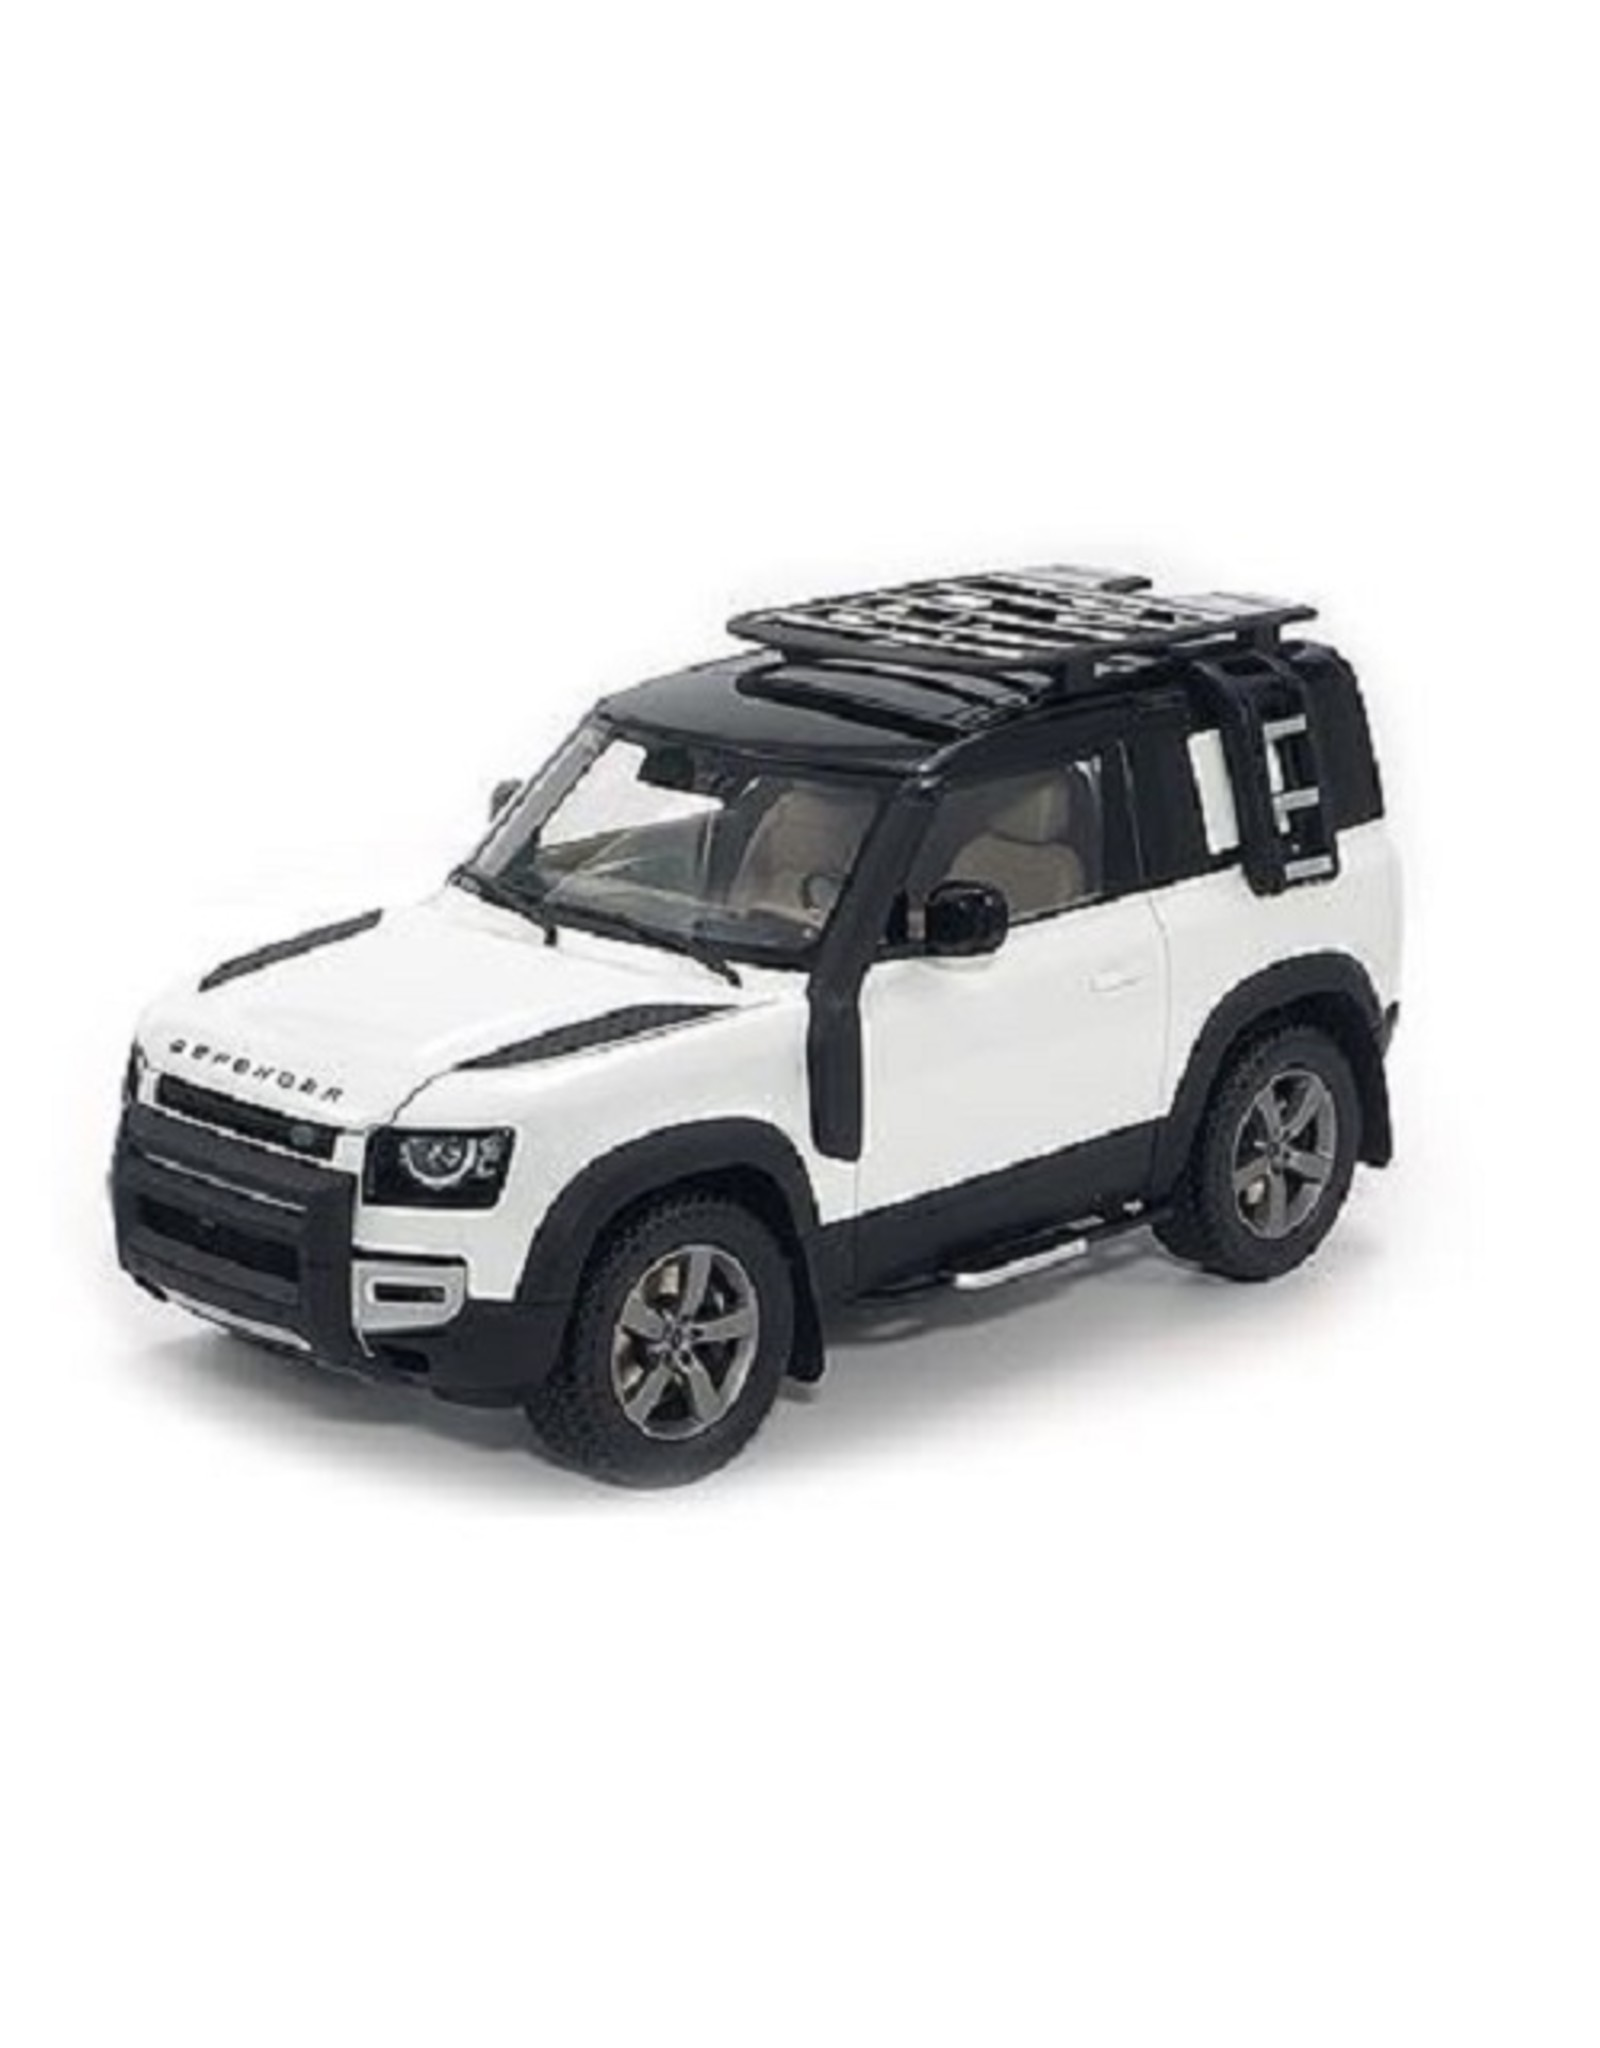 Land Rover Land Rover Defender 90 2020 - 1:18 - Almost Real